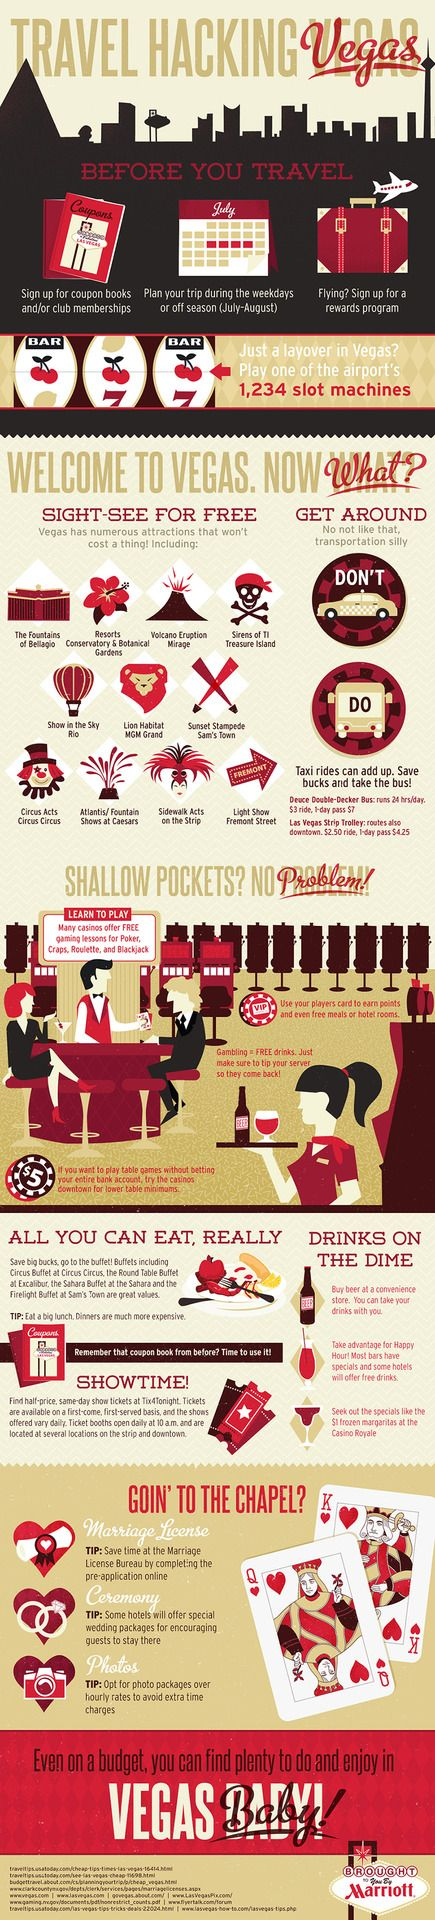 Vegas, Baby! A guide to travel hacking Sin City Infographic